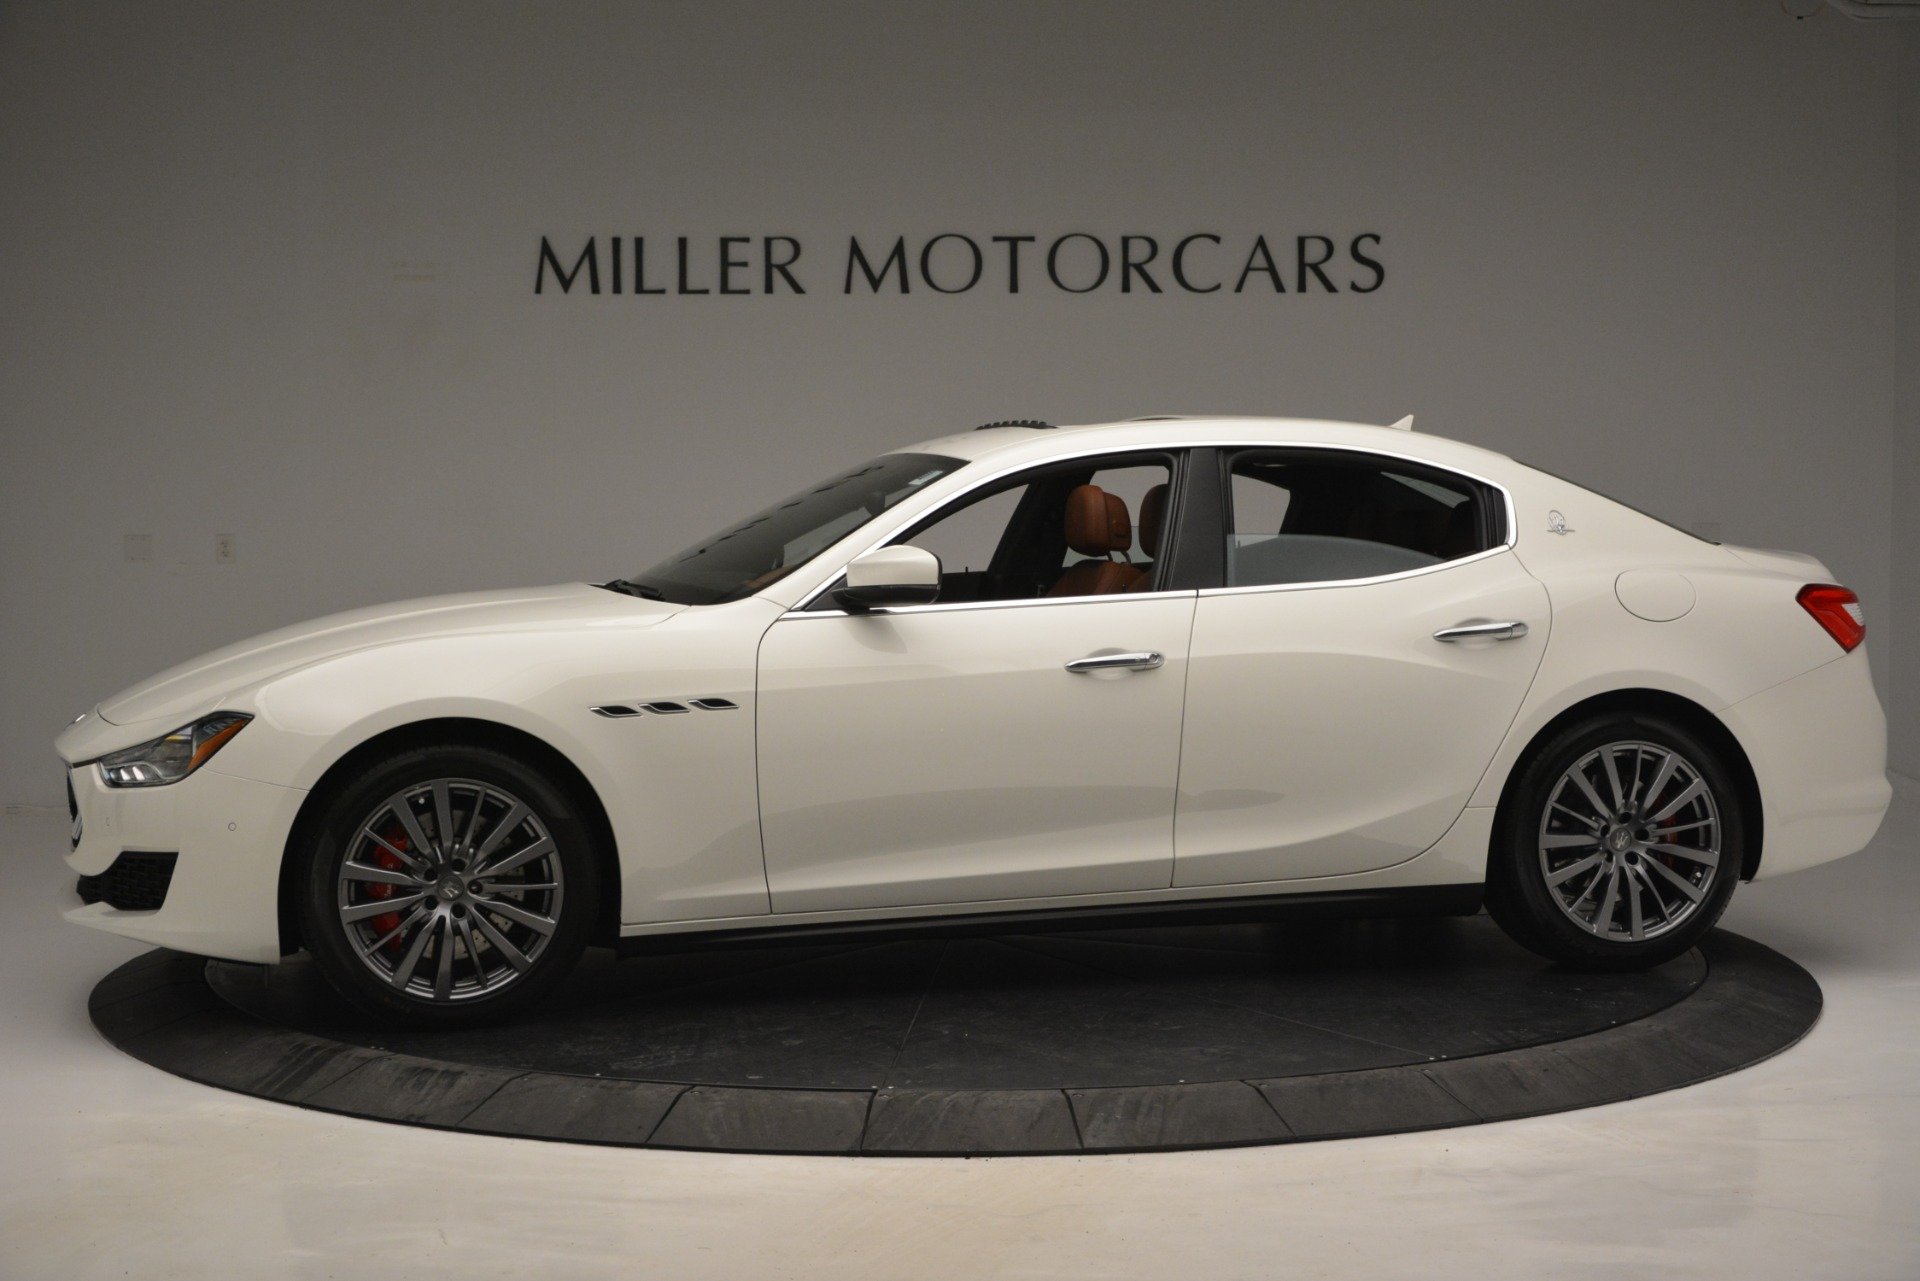 New 2019 Maserati Ghibli S Q4 For Sale In Greenwich, CT. Alfa Romeo of Greenwich, M2245 2795_p3